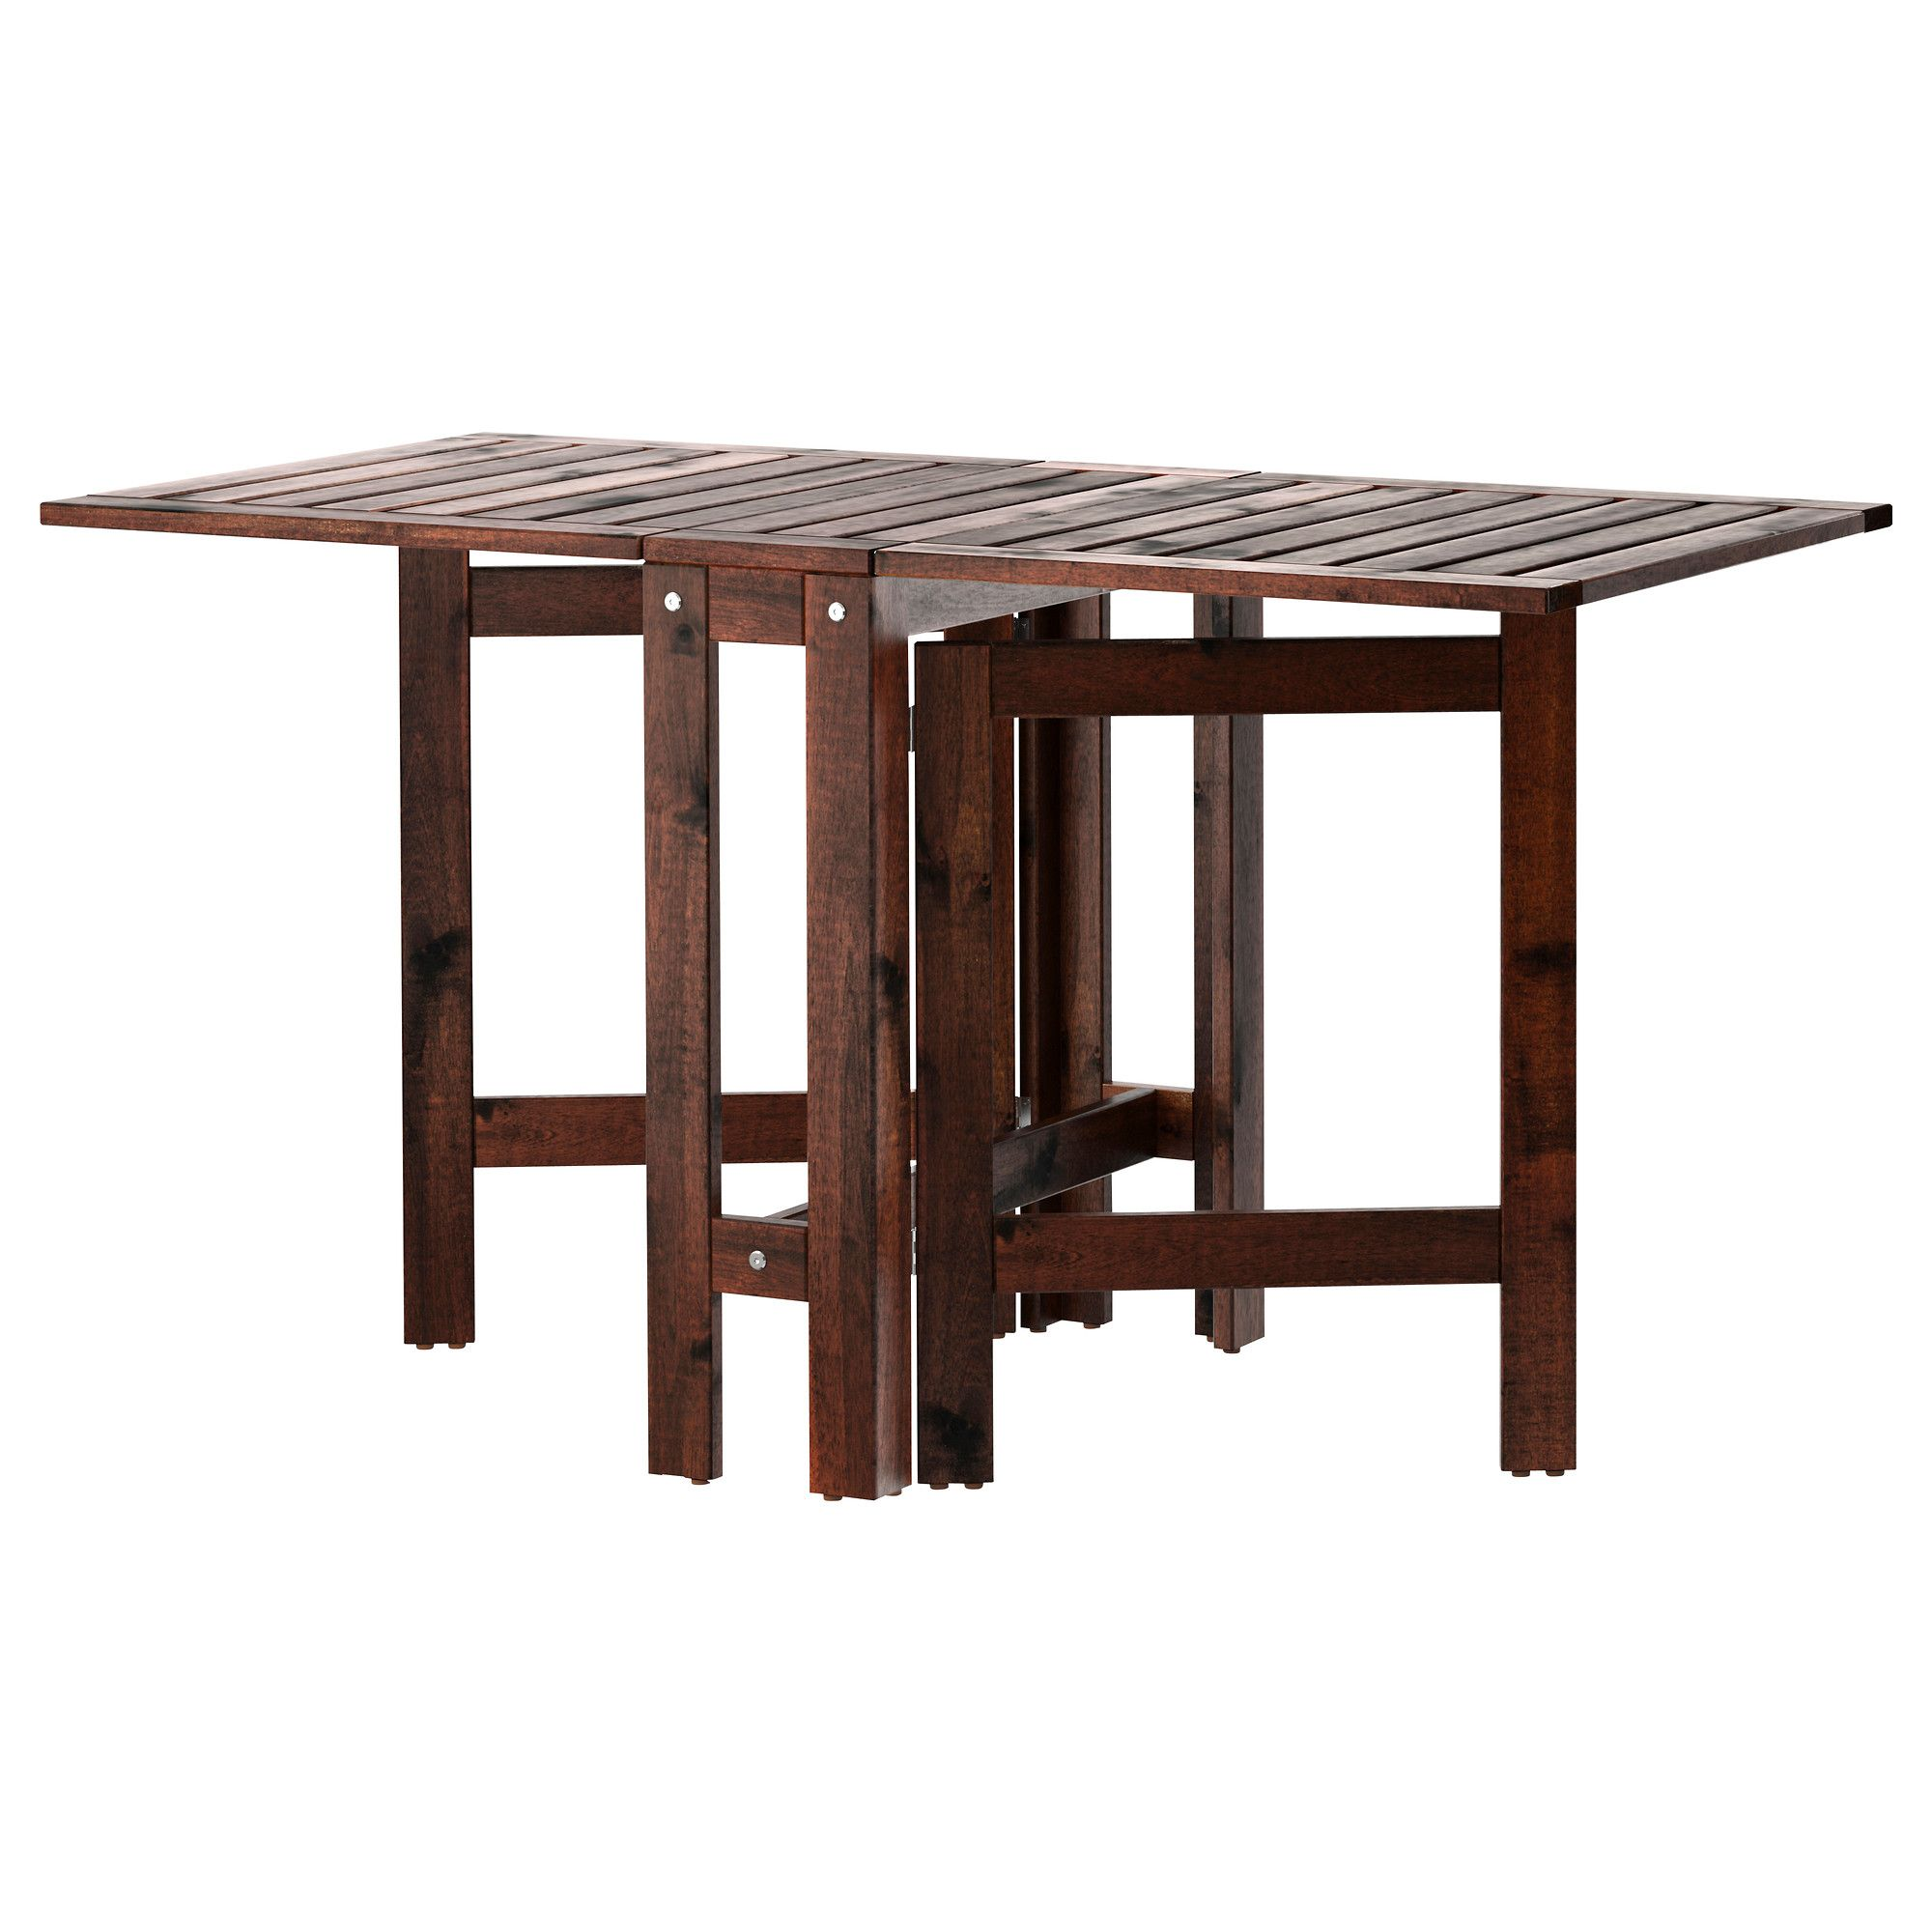 Applaro Gateleg Table Outdoor Brown Stained Brown 7 7 8 30 3 8